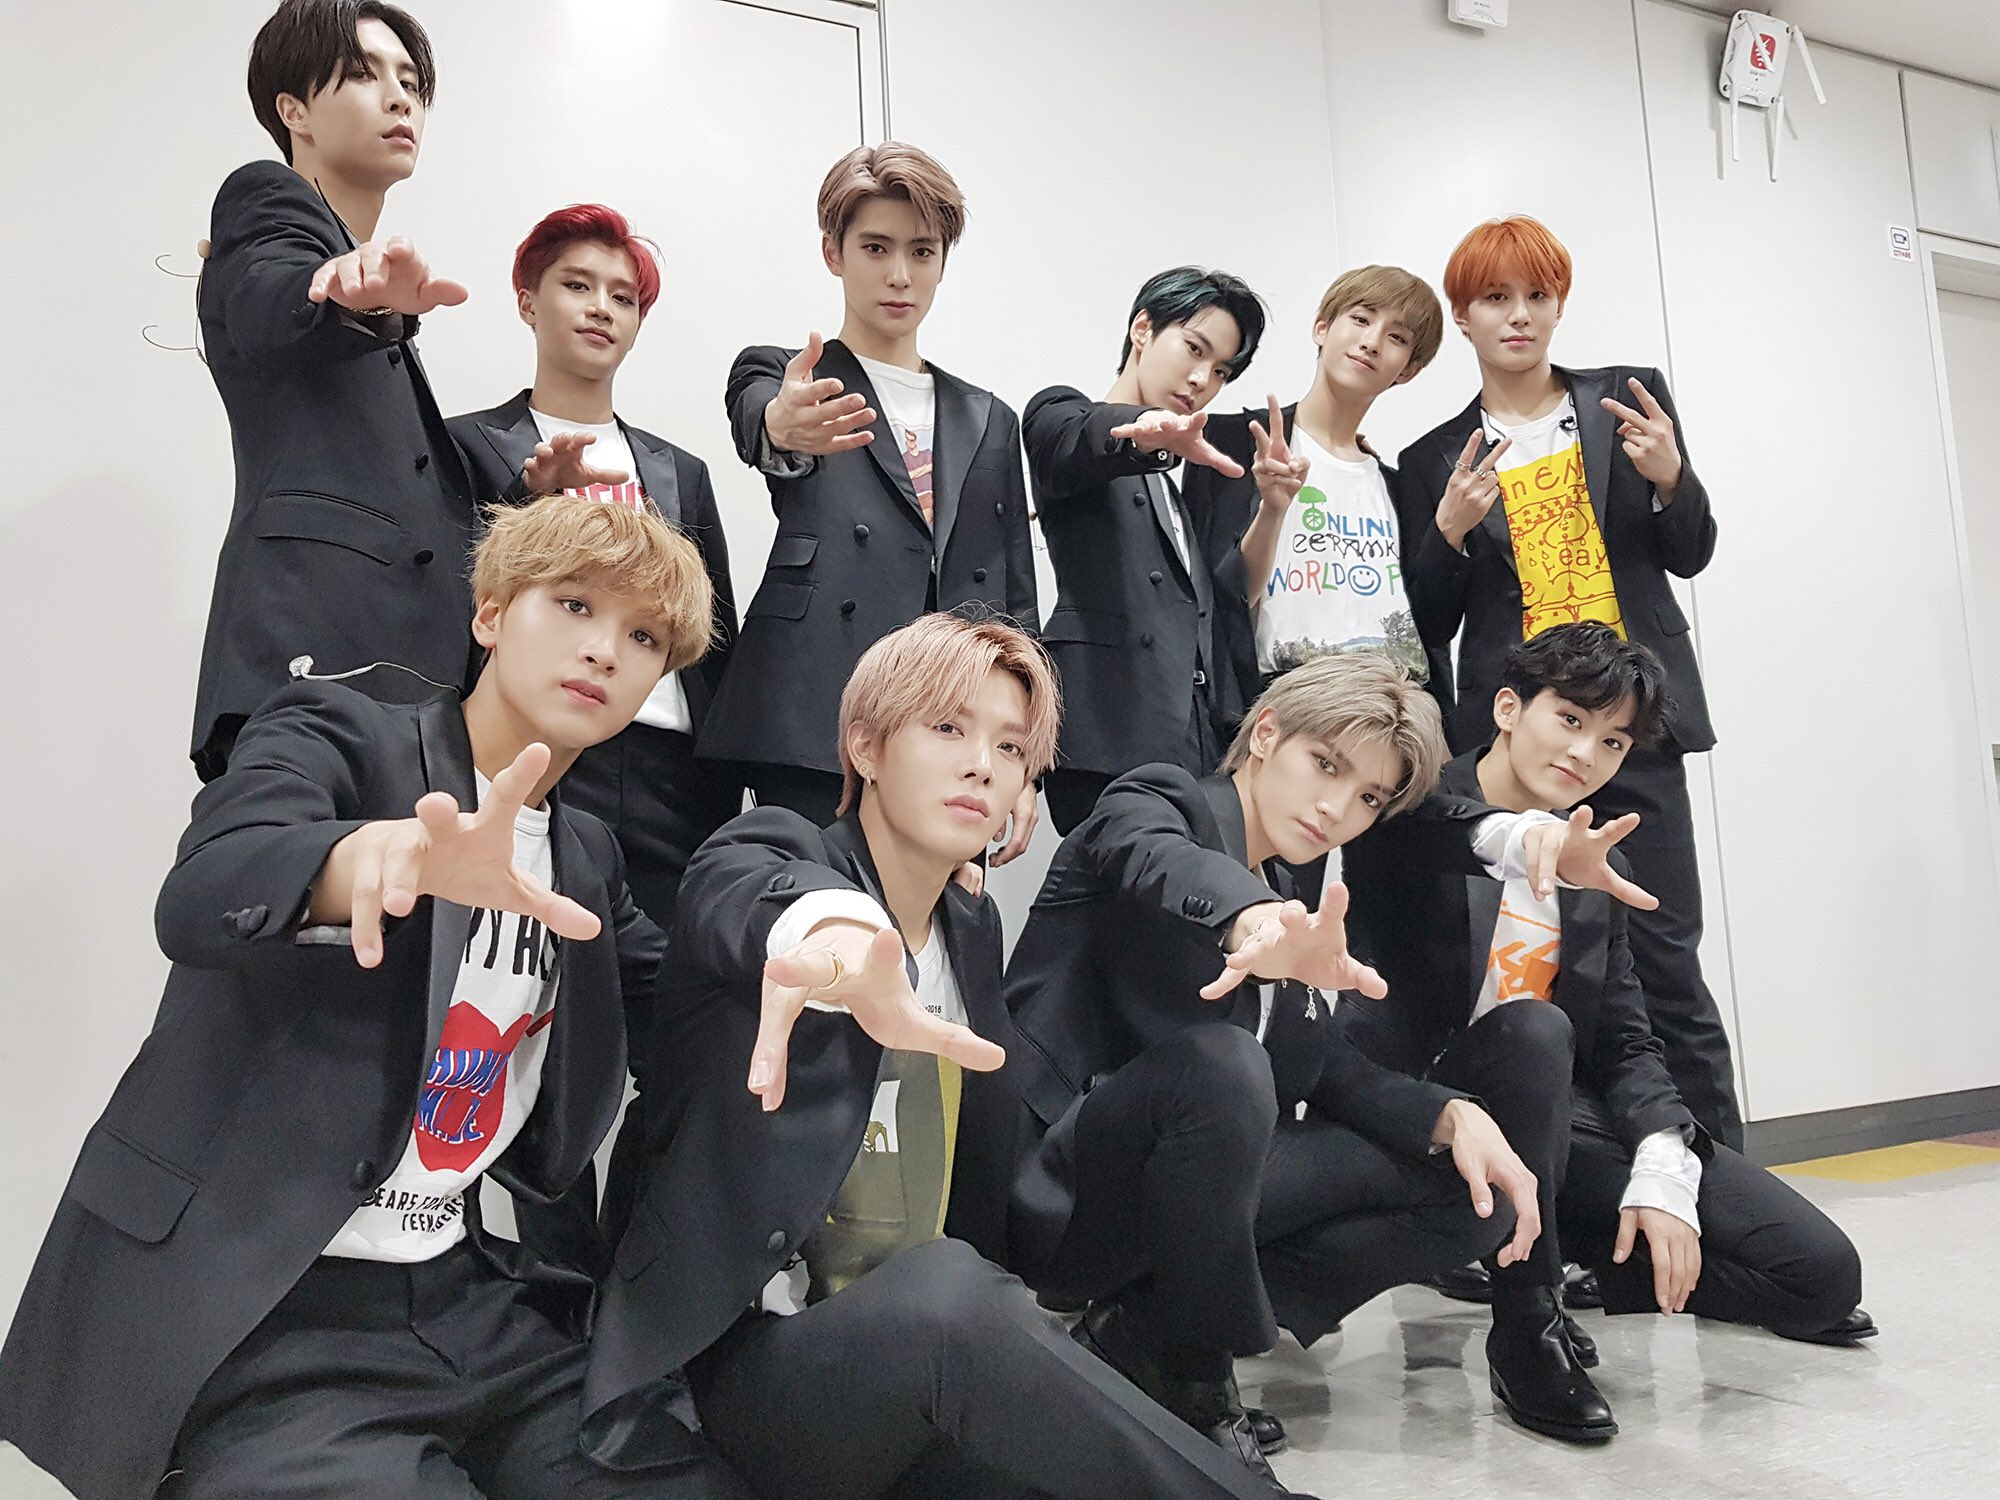 Nct 127 On Twitter Quot 내게로 컴 백 쇼챔피언 쇼챔 Nct127